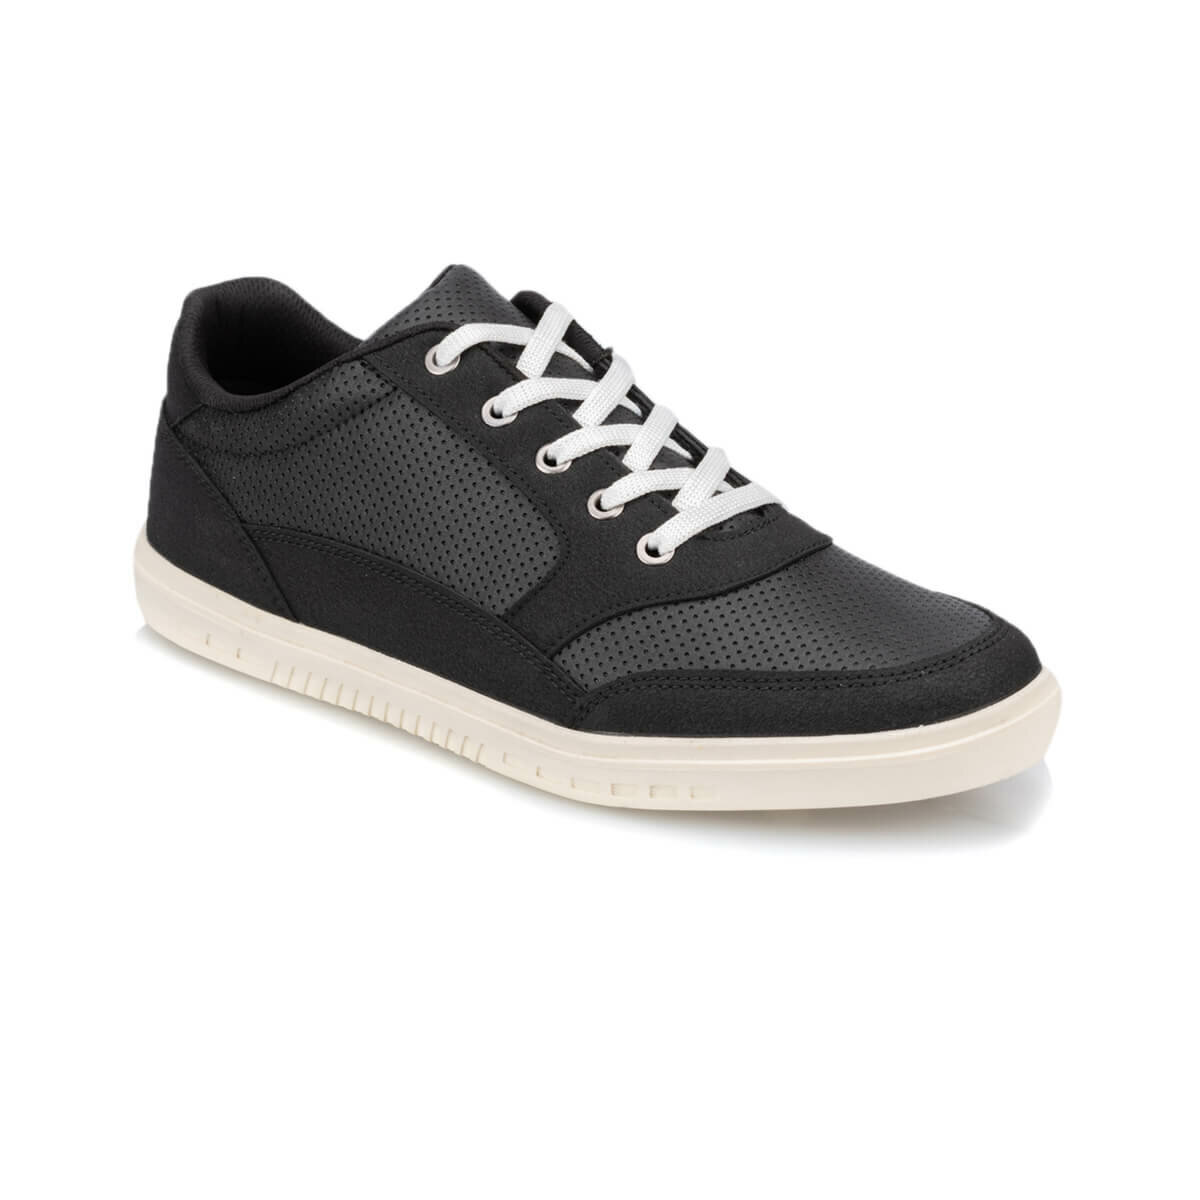 FLO 91.356064.M Black Men 'S Sneaker Shoes Polaris